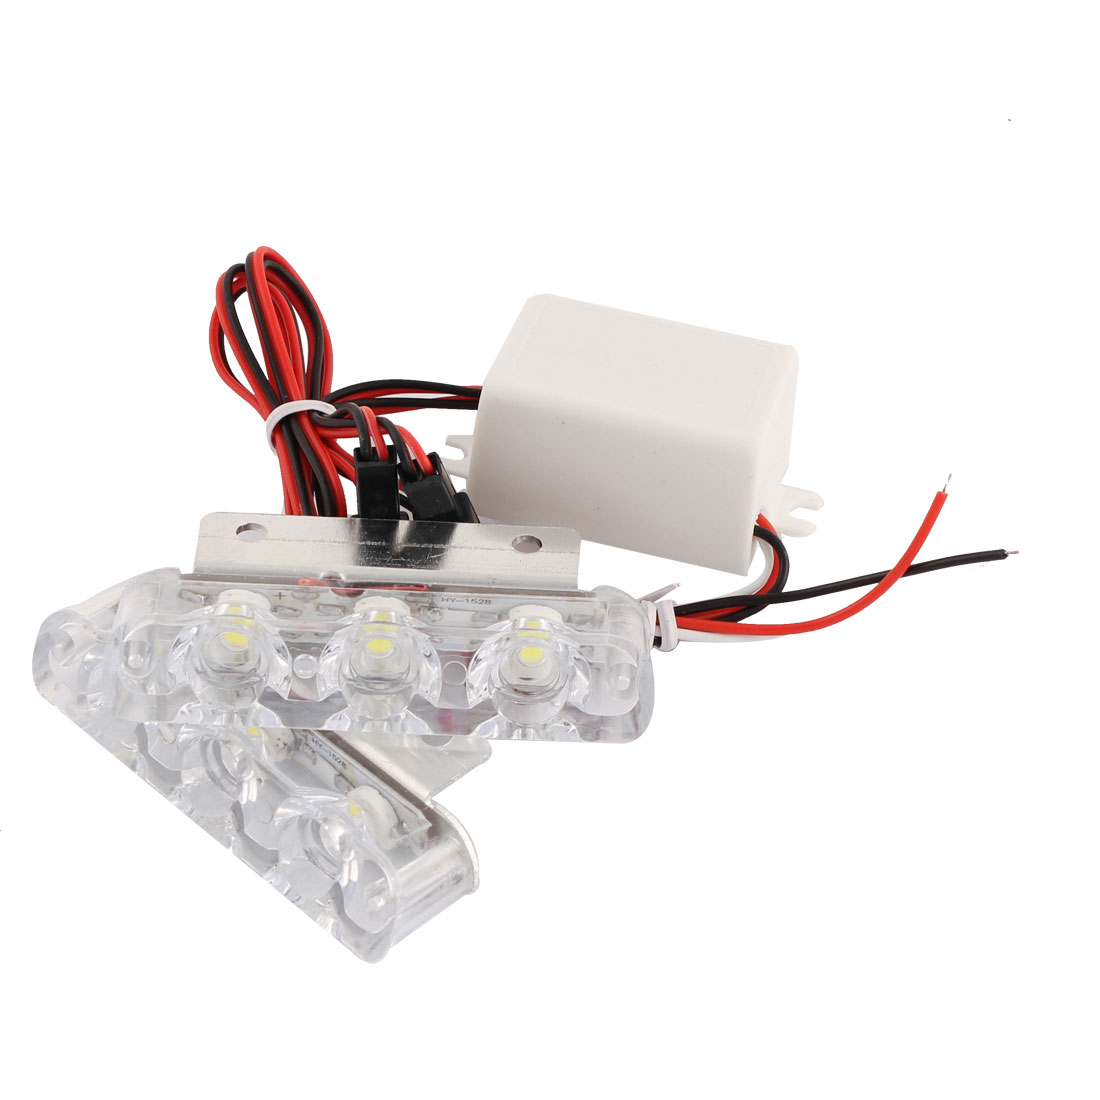 Pair White 6 LED Car DRL Daytime Running Driving Light Warning Flash Lamp DC 12V